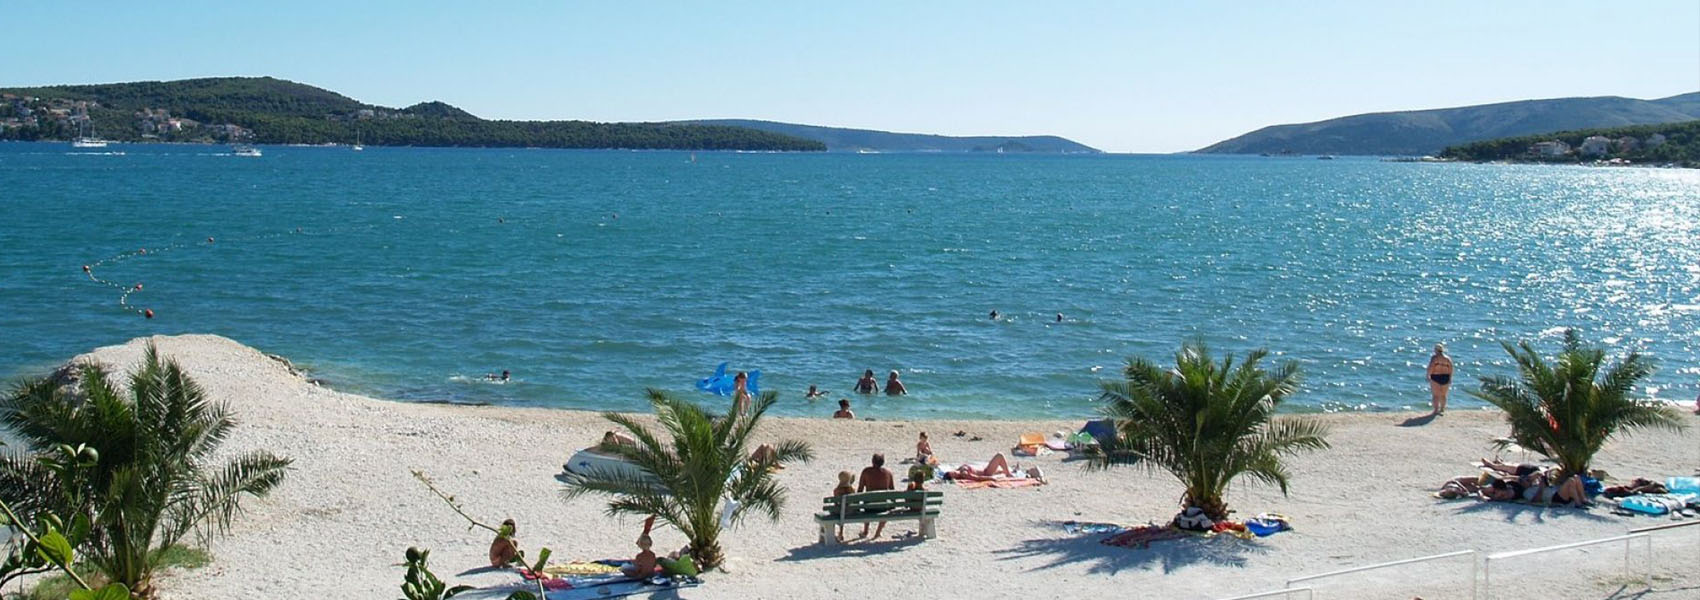 Beaches in Trogir area | Plavi Horizont